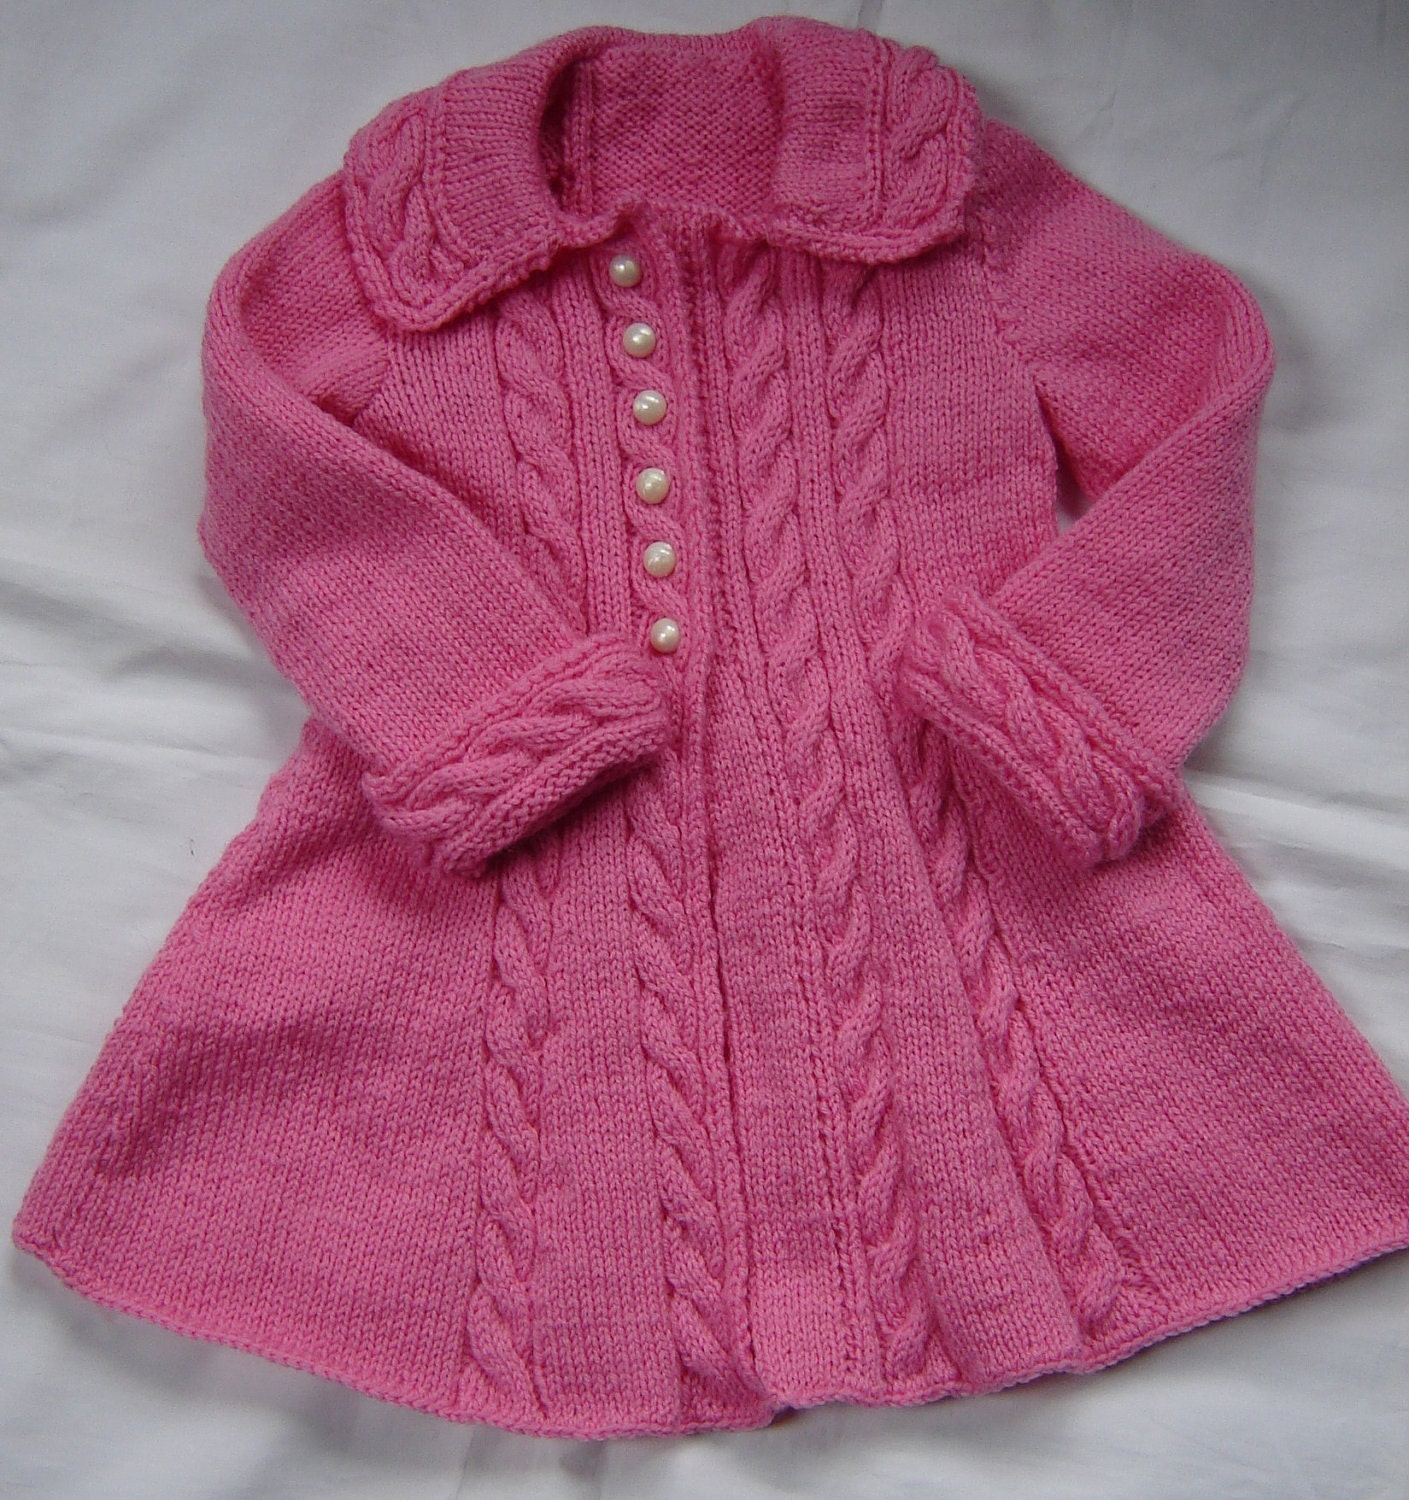 Sweater Pattern For Baby Girl - Long Sweater Jacket